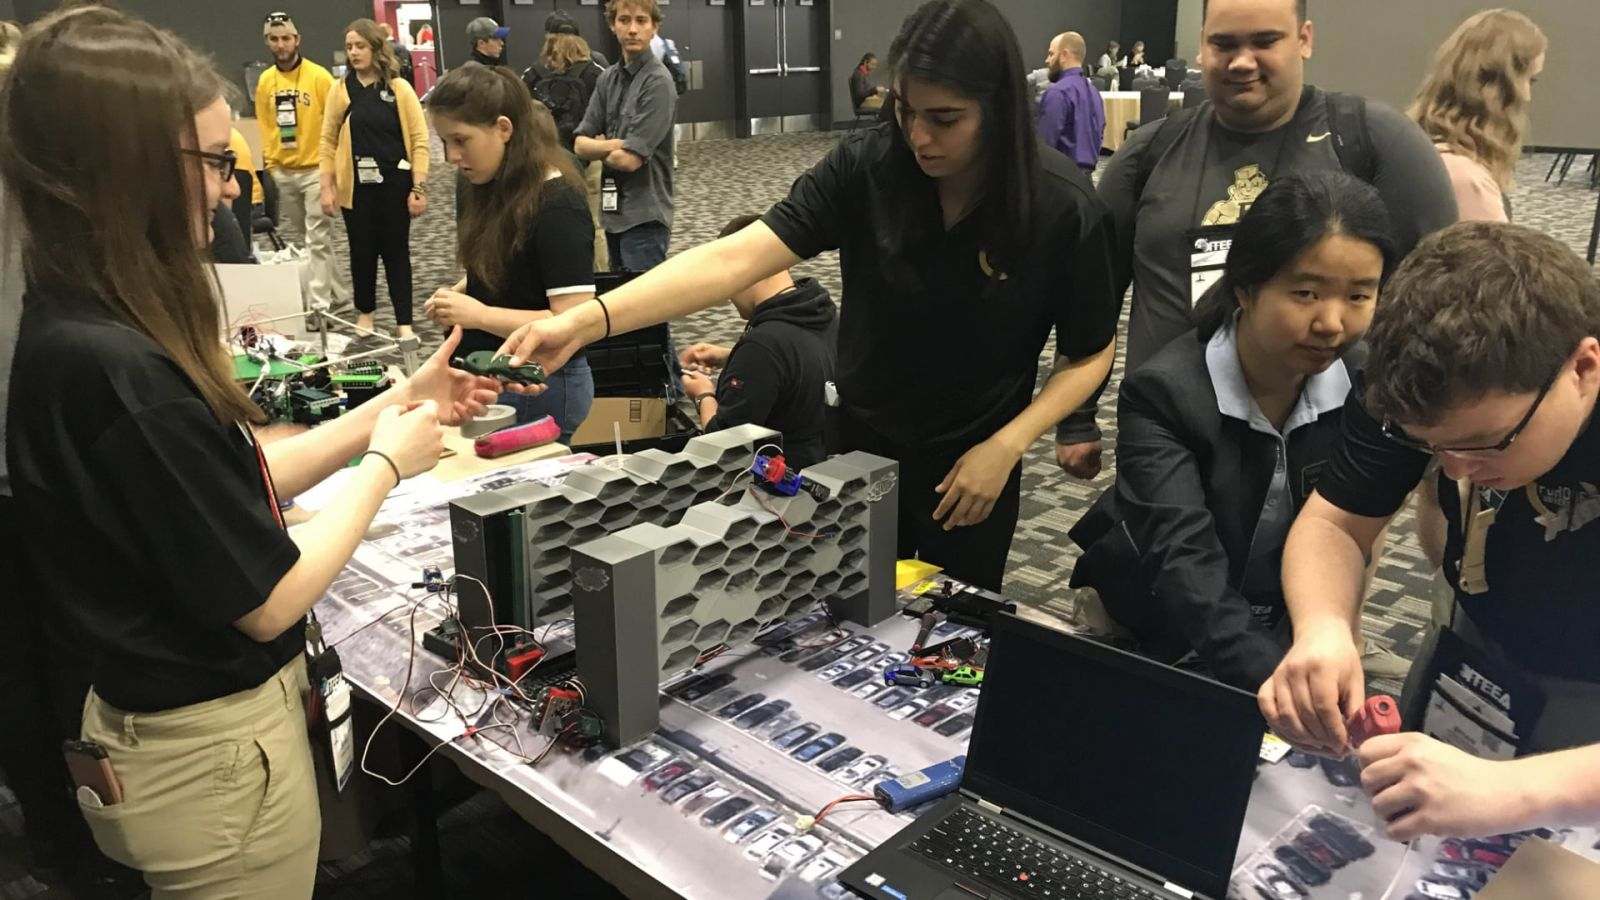 Purdue Polytechnic students Daphne Fauber, Vanessa Santana, Zach Laureano, Liwei Zhang and Brian DeRome engage their problem-solving skills at the 2019 ITEEA conference.